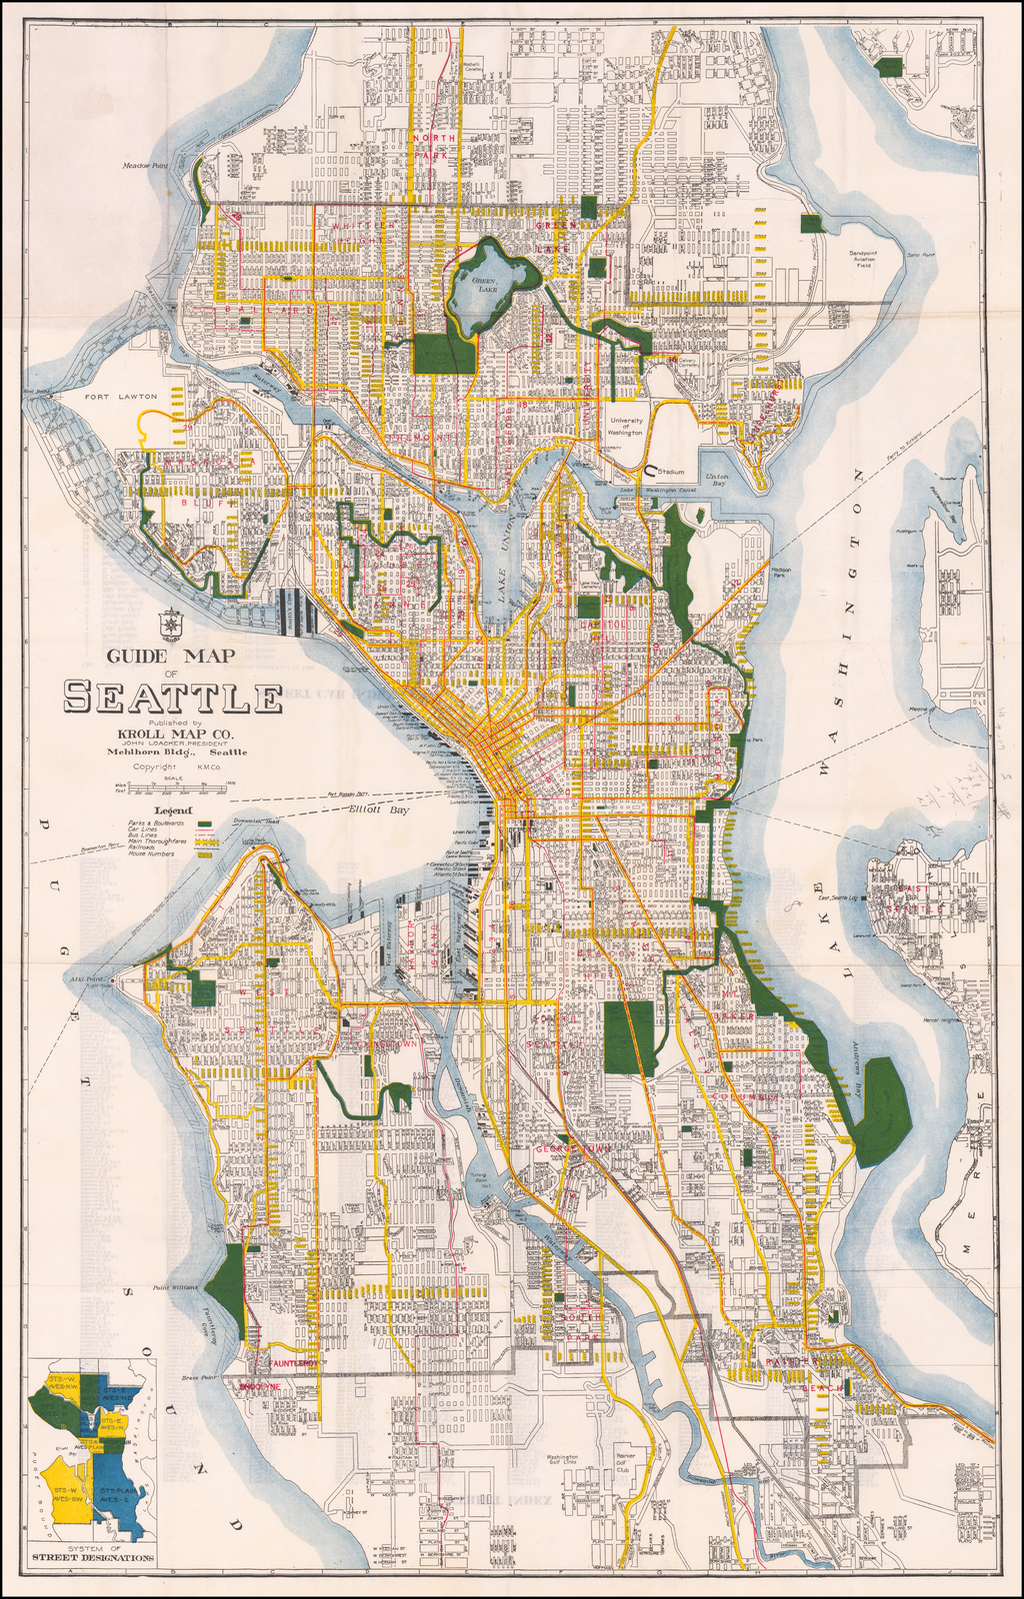 Guide Map of Seattle . . . By Kroll Map Company